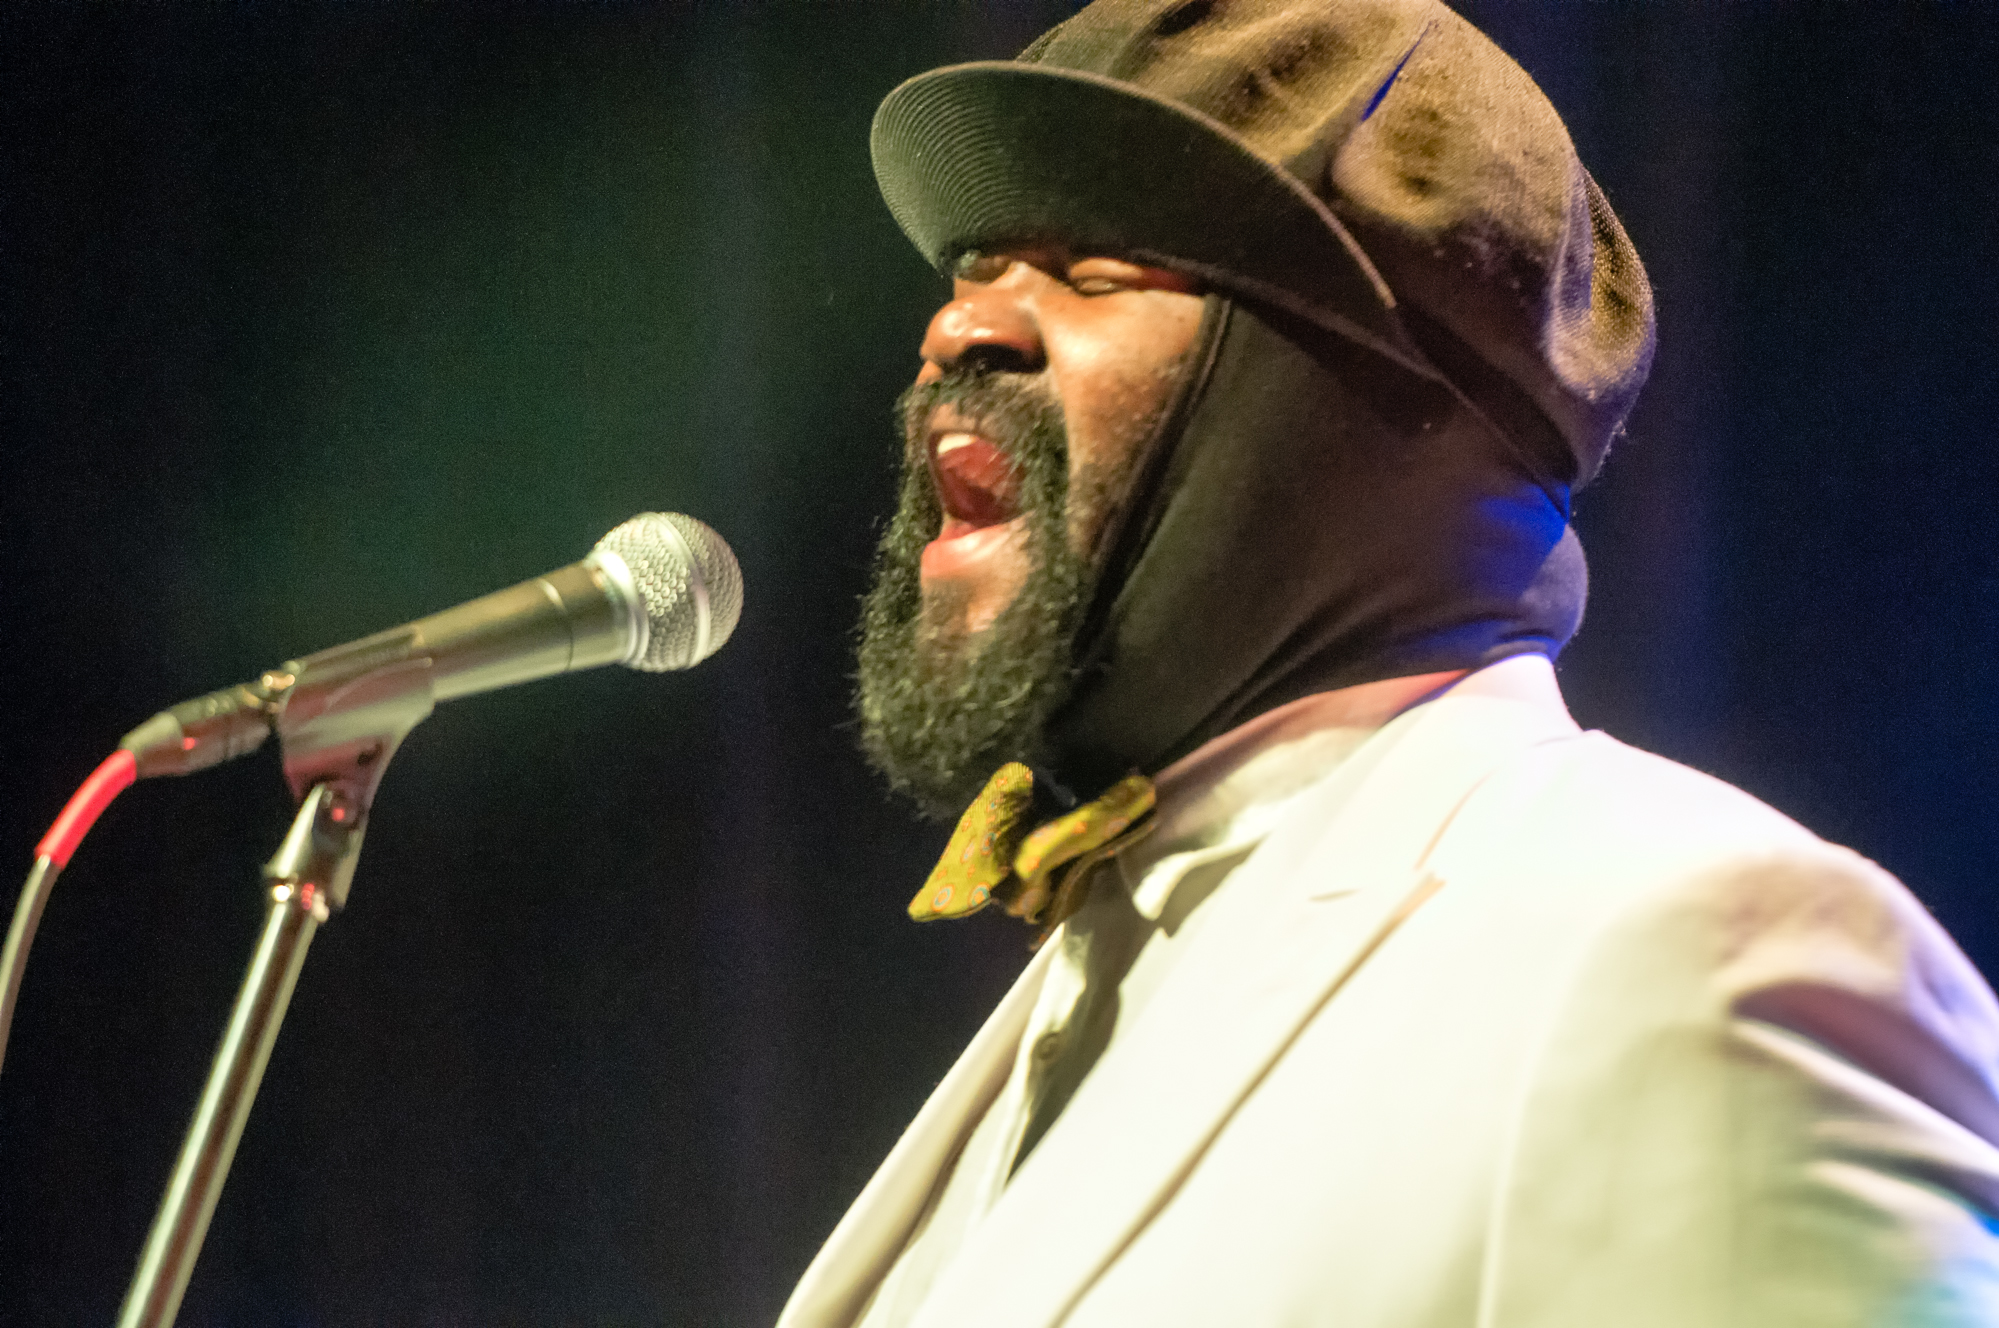 Gregory porter at the montreal international jazz festival 2013